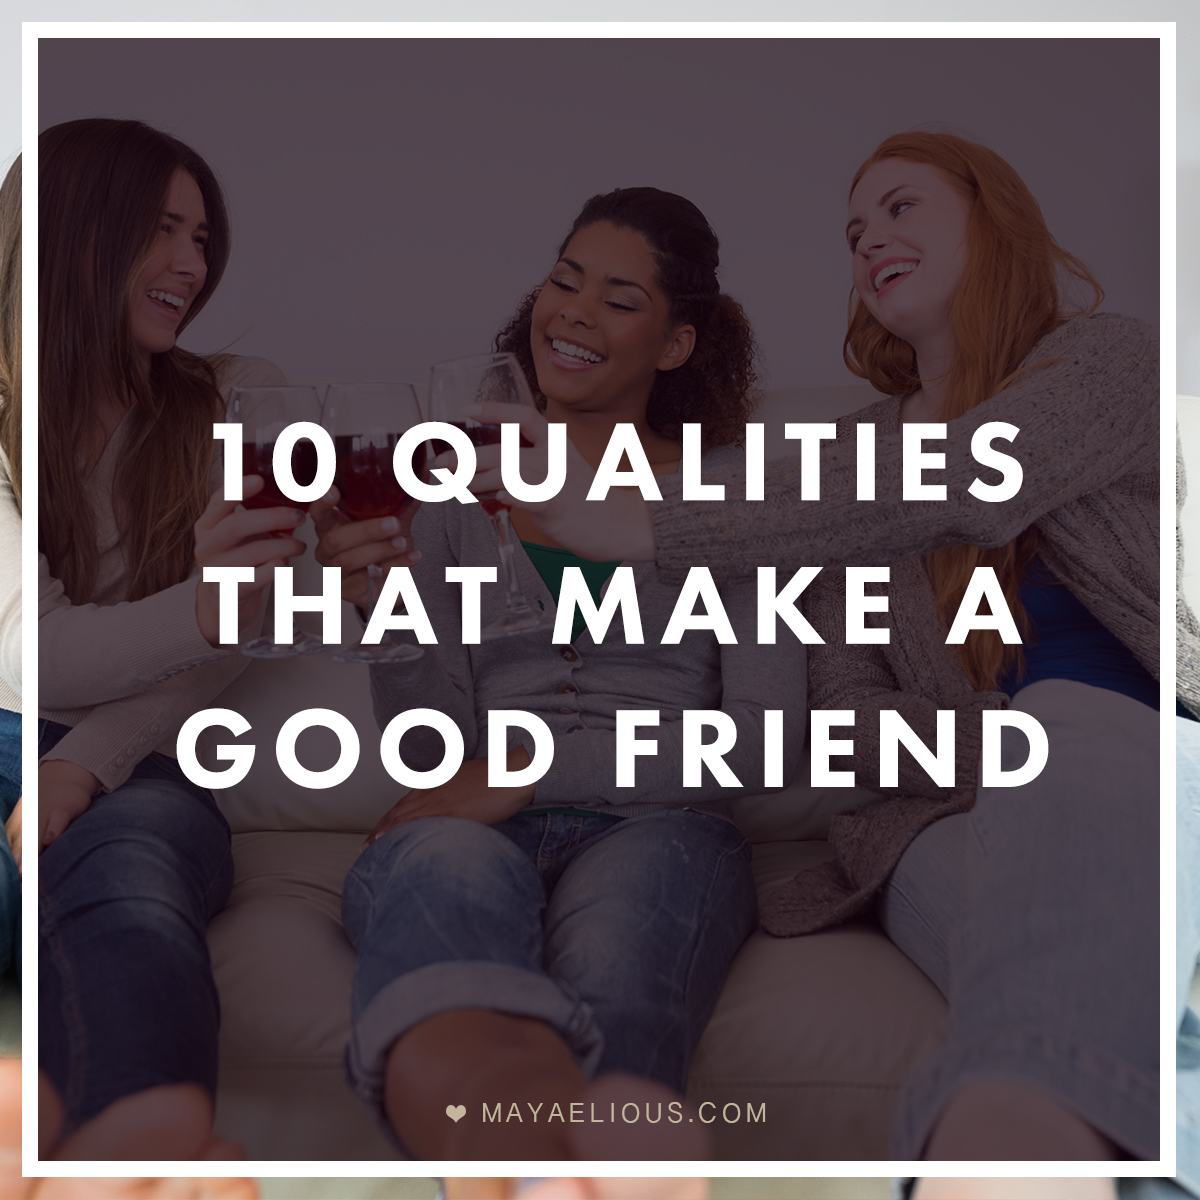 essays on qualities of a good friend Quality of a good friend essay views 67262 comments 0 essay help author sandra w  at iwriteessayscom we will give you some tips on qualities of a good friend that you can use in.